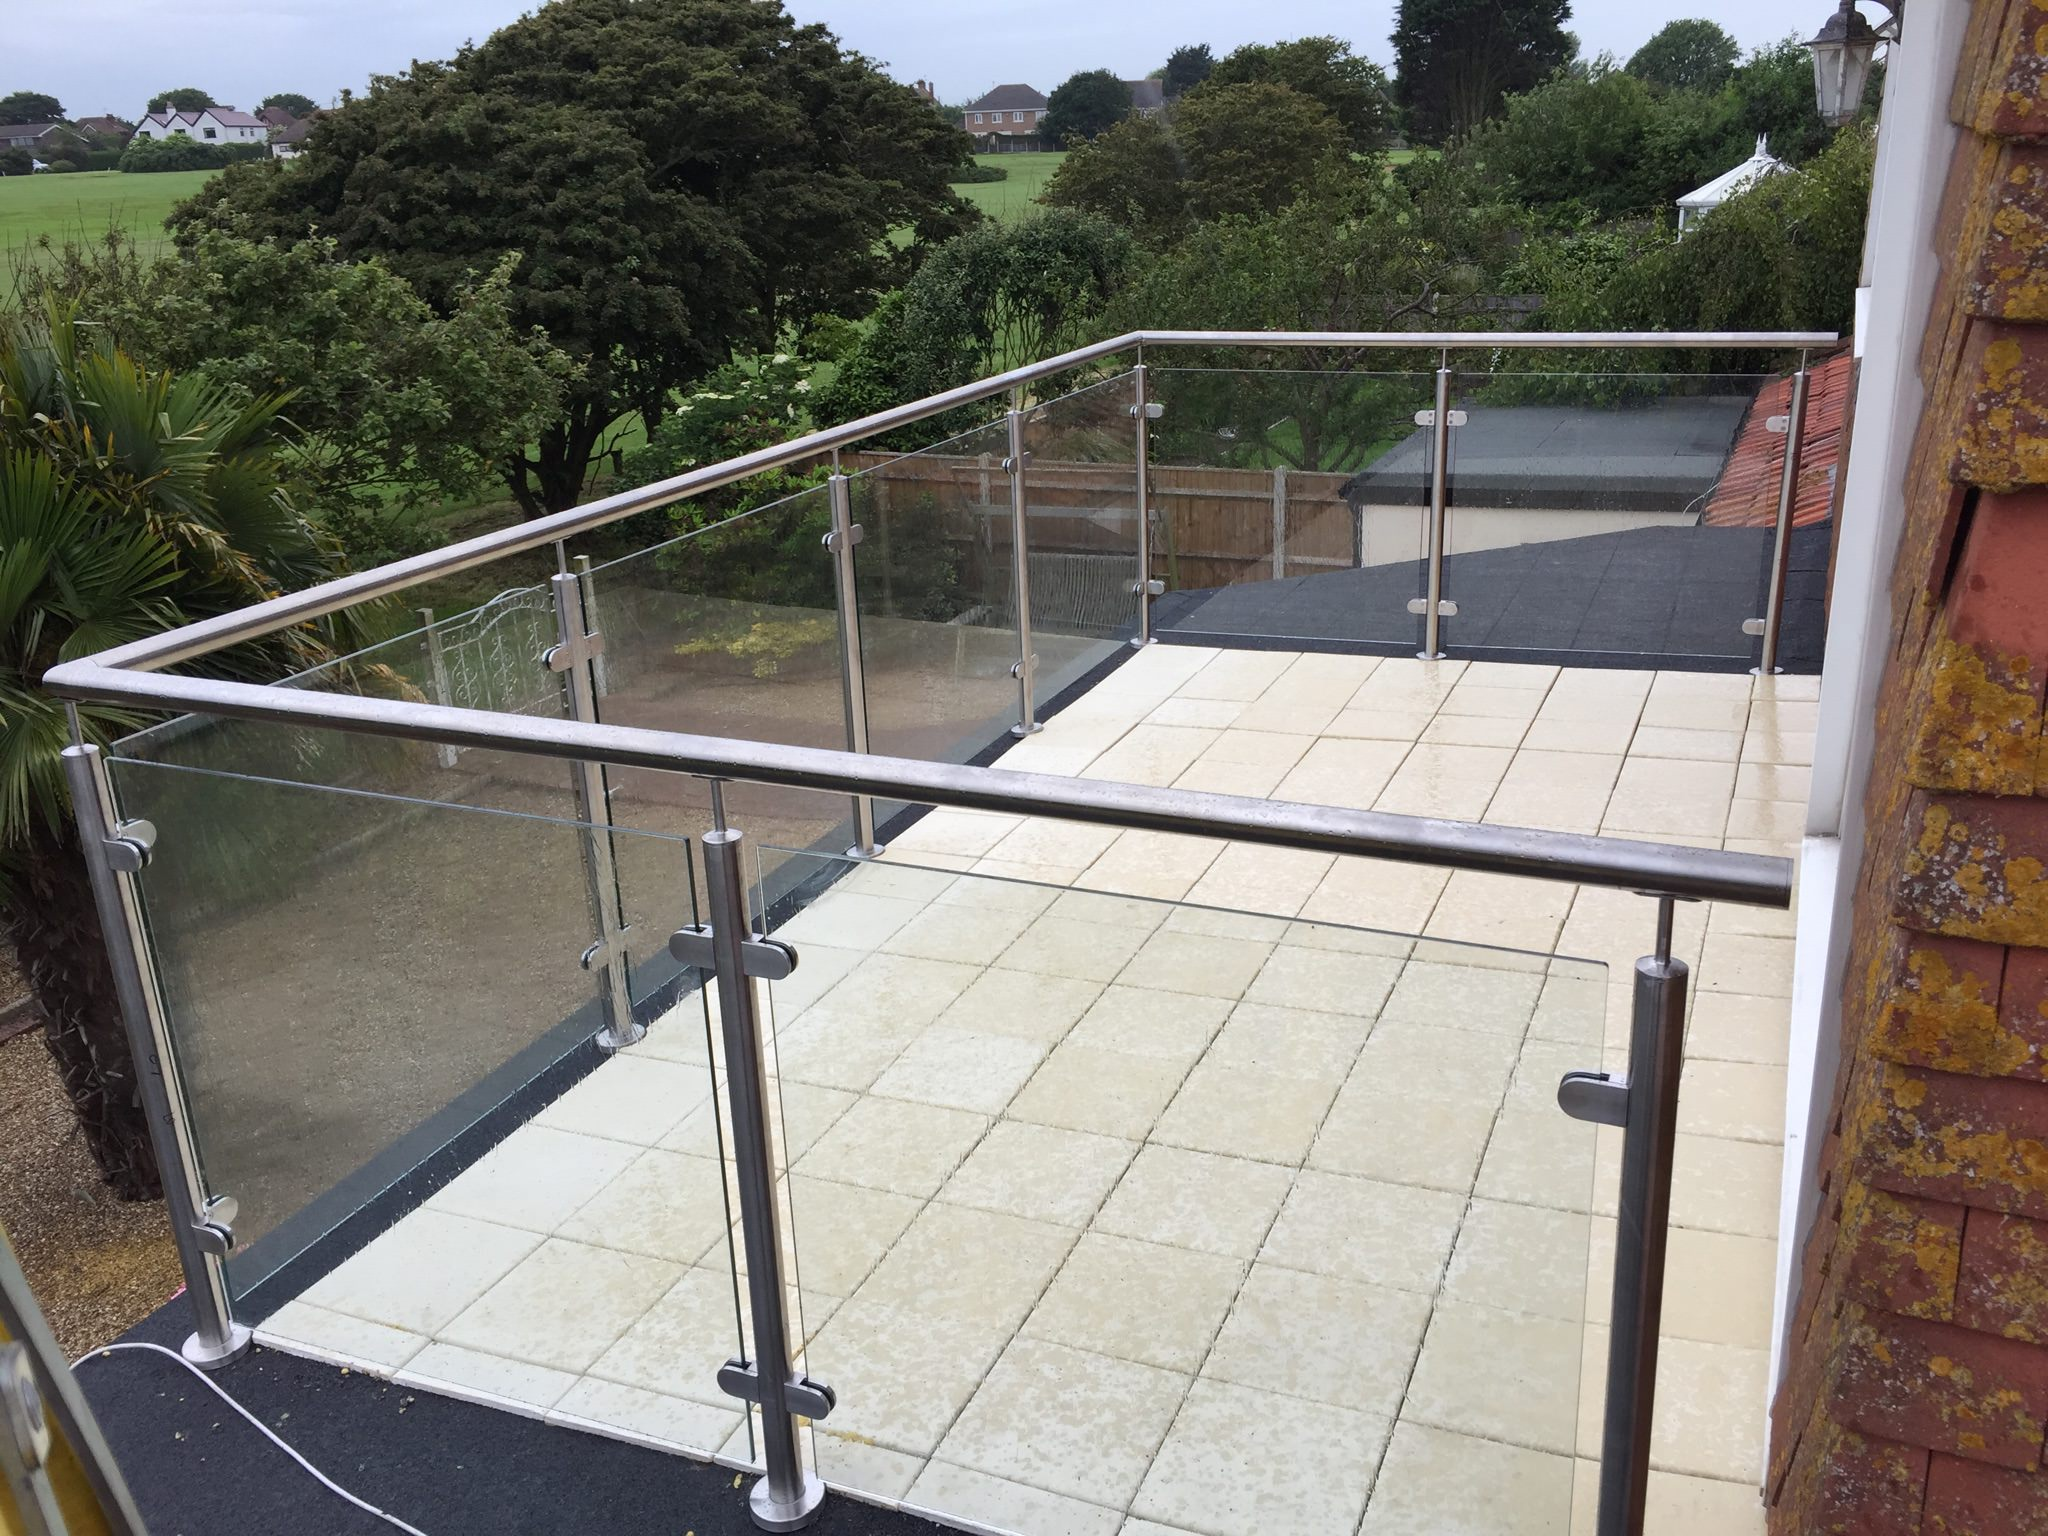 What is the Legal Minimum Handrail height?